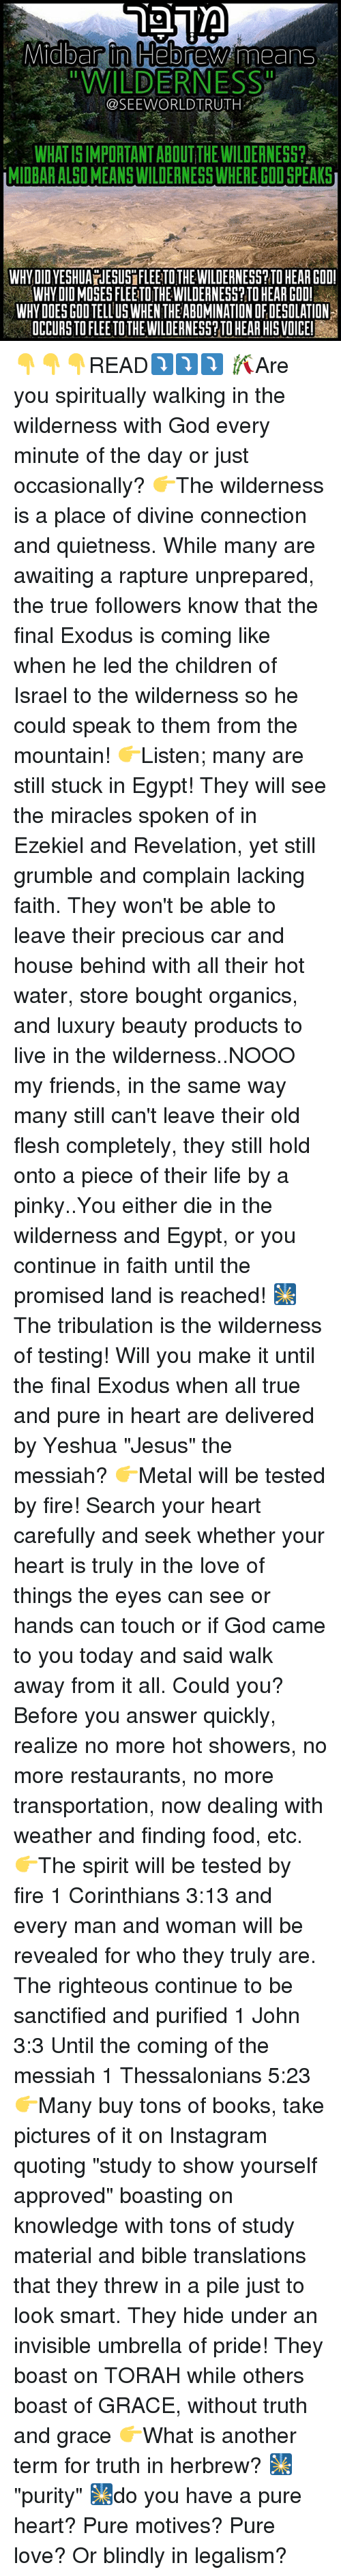 "Memes, 🤖, and Answers: Midbar in HebreNWAmeanss  ""WILDERNESS  SEEWORLDTRUTH  WHATISIMPORTANTABOUT THE WILDERNESS?  IMIDBAR ALSOMEANS WILDERNESS WHEREGOD SPEAKS  WHYDID YESHUANESUSIFLEETOTHEWILDERNESS? TO HEAR CODI  WHYDIDMISESFLEETOTHEWILDERNESS? TOHEARGODI  WHY DOESGDOTELLUSWHEN THEABOMINATION DFDESDLATION  DCCURSTOFLEE TO THE WILDERNESS? TO HEARHISVOICEI 👇👇👇READ⤵⤵⤵ 🎋Are you spiritually walking in the wilderness with God every minute of the day or just occasionally? 👉The wilderness is a place of divine connection and quietness. While many are awaiting a rapture unprepared, the true followers know that the final Exodus is coming like when he led the children of Israel to the wilderness so he could speak to them from the mountain! 👉Listen; many are still stuck in Egypt! They will see the miracles spoken of in Ezekiel and Revelation, yet still grumble and complain lacking faith. They won't be able to leave their precious car and house behind with all their hot water, store bought organics, and luxury beauty products to live in the wilderness..NOOO my friends, in the same way many still can't leave their old flesh completely, they still hold onto a piece of their life by a pinky..You either die in the wilderness and Egypt, or you continue in faith until the promised land is reached! 🎇The tribulation is the wilderness of testing! Will you make it until the final Exodus when all true and pure in heart are delivered by Yeshua ""Jesus"" the messiah? 👉Metal will be tested by fire! Search your heart carefully and seek whether your heart is truly in the love of things the eyes can see or hands can touch or if God came to you today and said walk away from it all. Could you? Before you answer quickly, realize no more hot showers, no more restaurants, no more transportation, now dealing with weather and finding food, etc. 👉The spirit will be tested by fire 1 Corinthians 3:13 and every man and woman will be revealed for who they truly are. The righteous continue to be sanctified and purified 1 John 3:3 Until the coming of the messiah 1 Thessalonians 5:23 👉Many buy tons of books, take pictures of it on Instagram quoting ""study to show yourself approved"" boasting on knowledge with tons of study material and bible translations that they threw in a pile just to look smart. They hide under an invisible umbrella of pride! They boast on TORAH while others boast of GRACE, without truth and grace 👉What is another term for truth in herbrew? 🎇""purity"" 🎇do you have a pure heart? Pure motives? Pure love? Or blindly in legalism?"